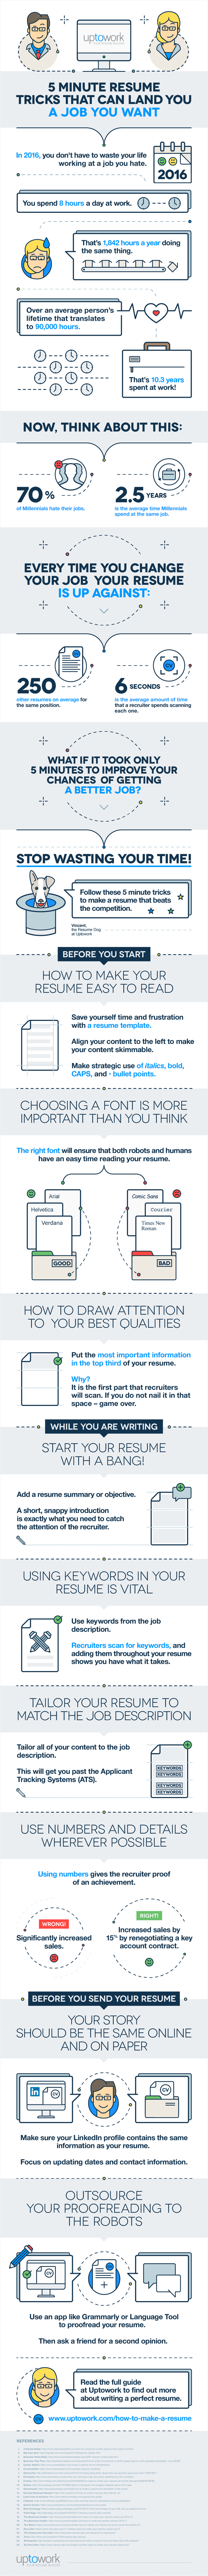 the five minute hacks to improve your resume infographic presents creating a good reacutesumeacute is a necessary but tedious part of job hunting however you not need to spend a lot of time on it to ensure that